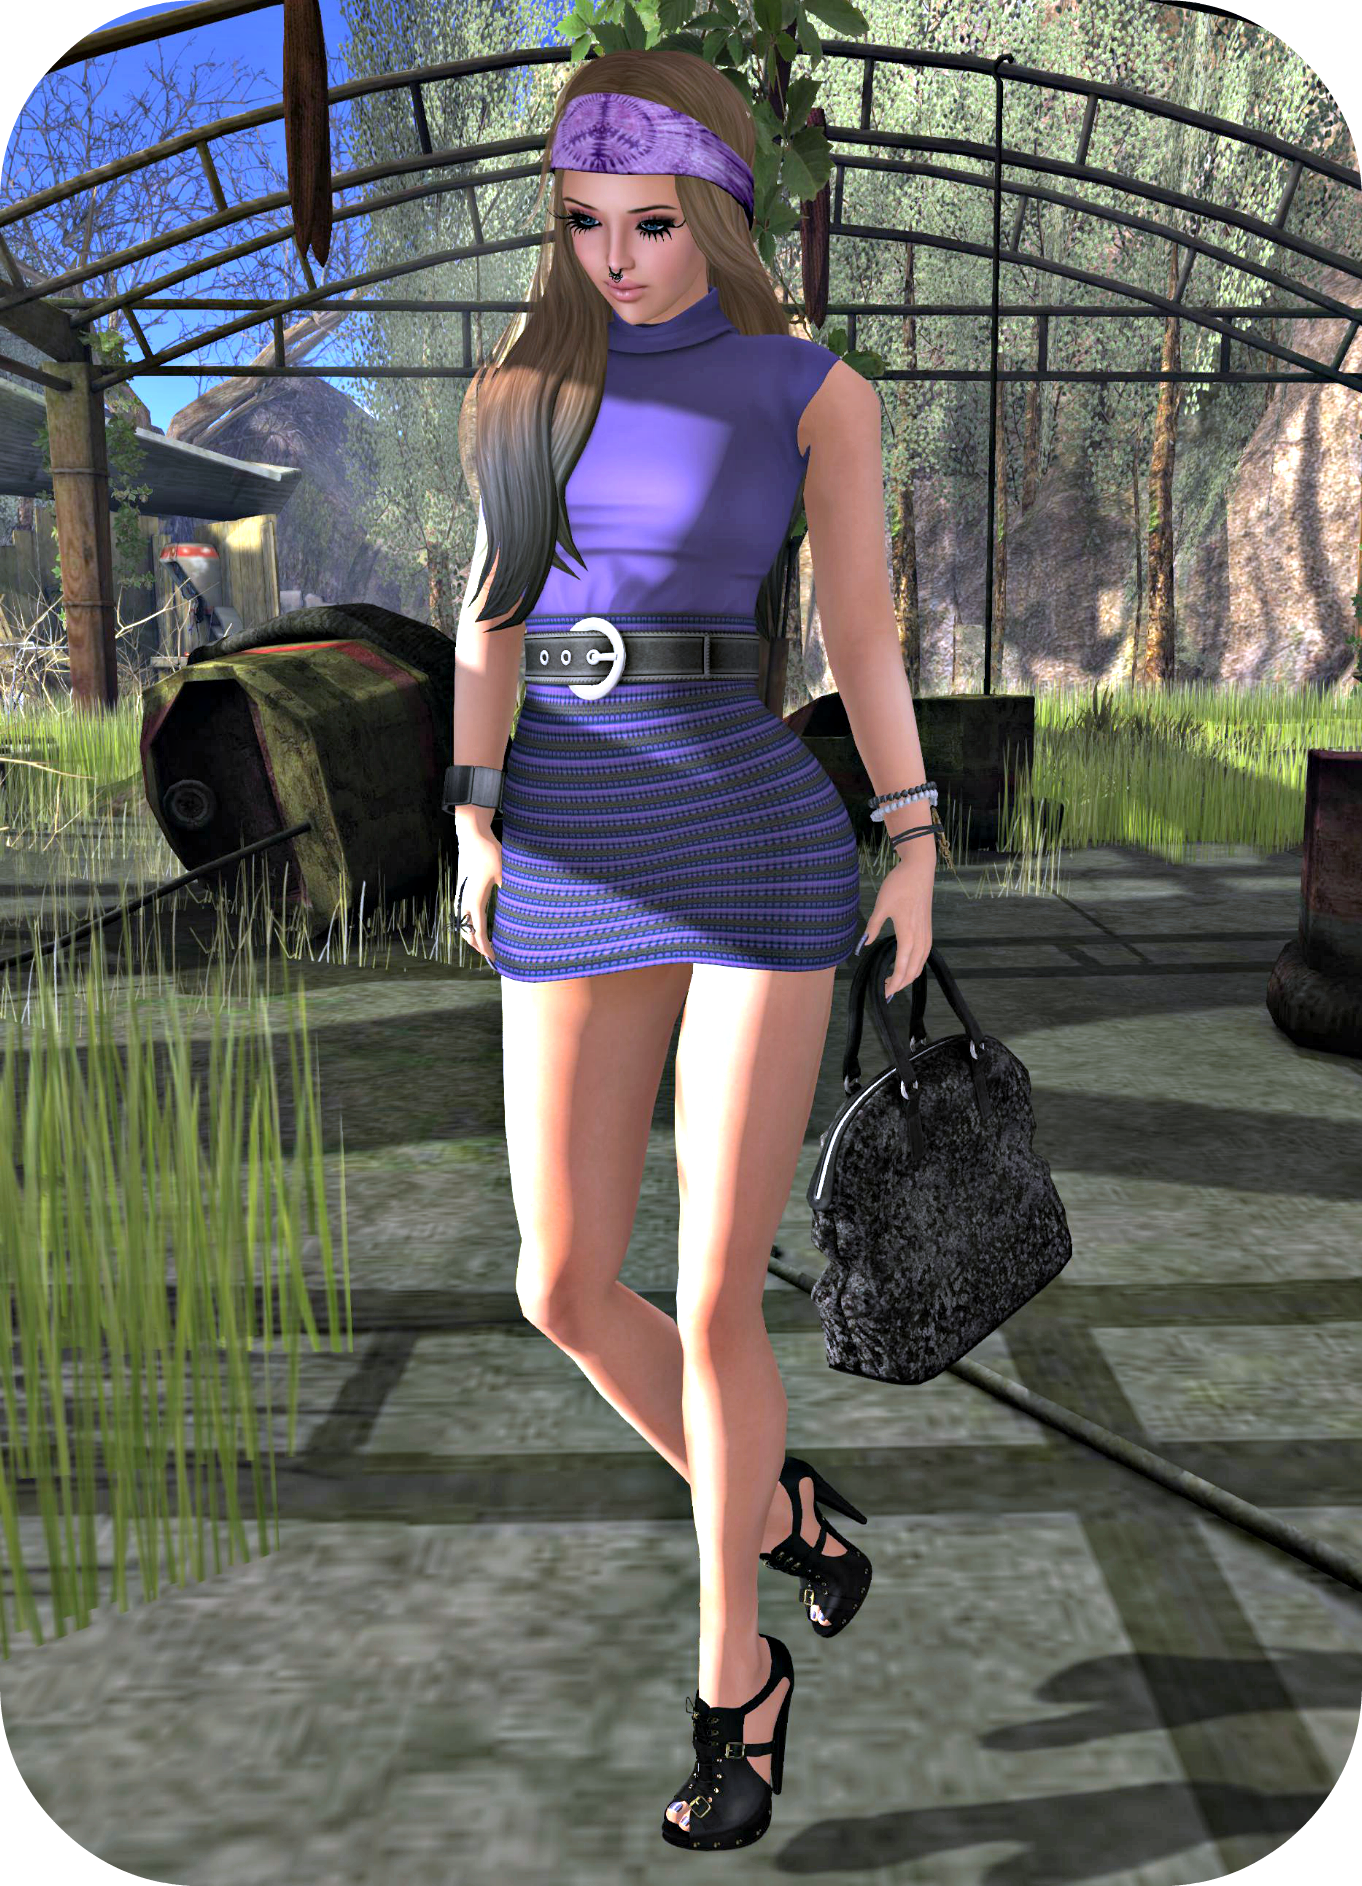 Tameless, GA, 7Deadly, Bedazzled, Lindy, Reign, Uber, Piercing, ZoZ, Baubles ED 10_cropped